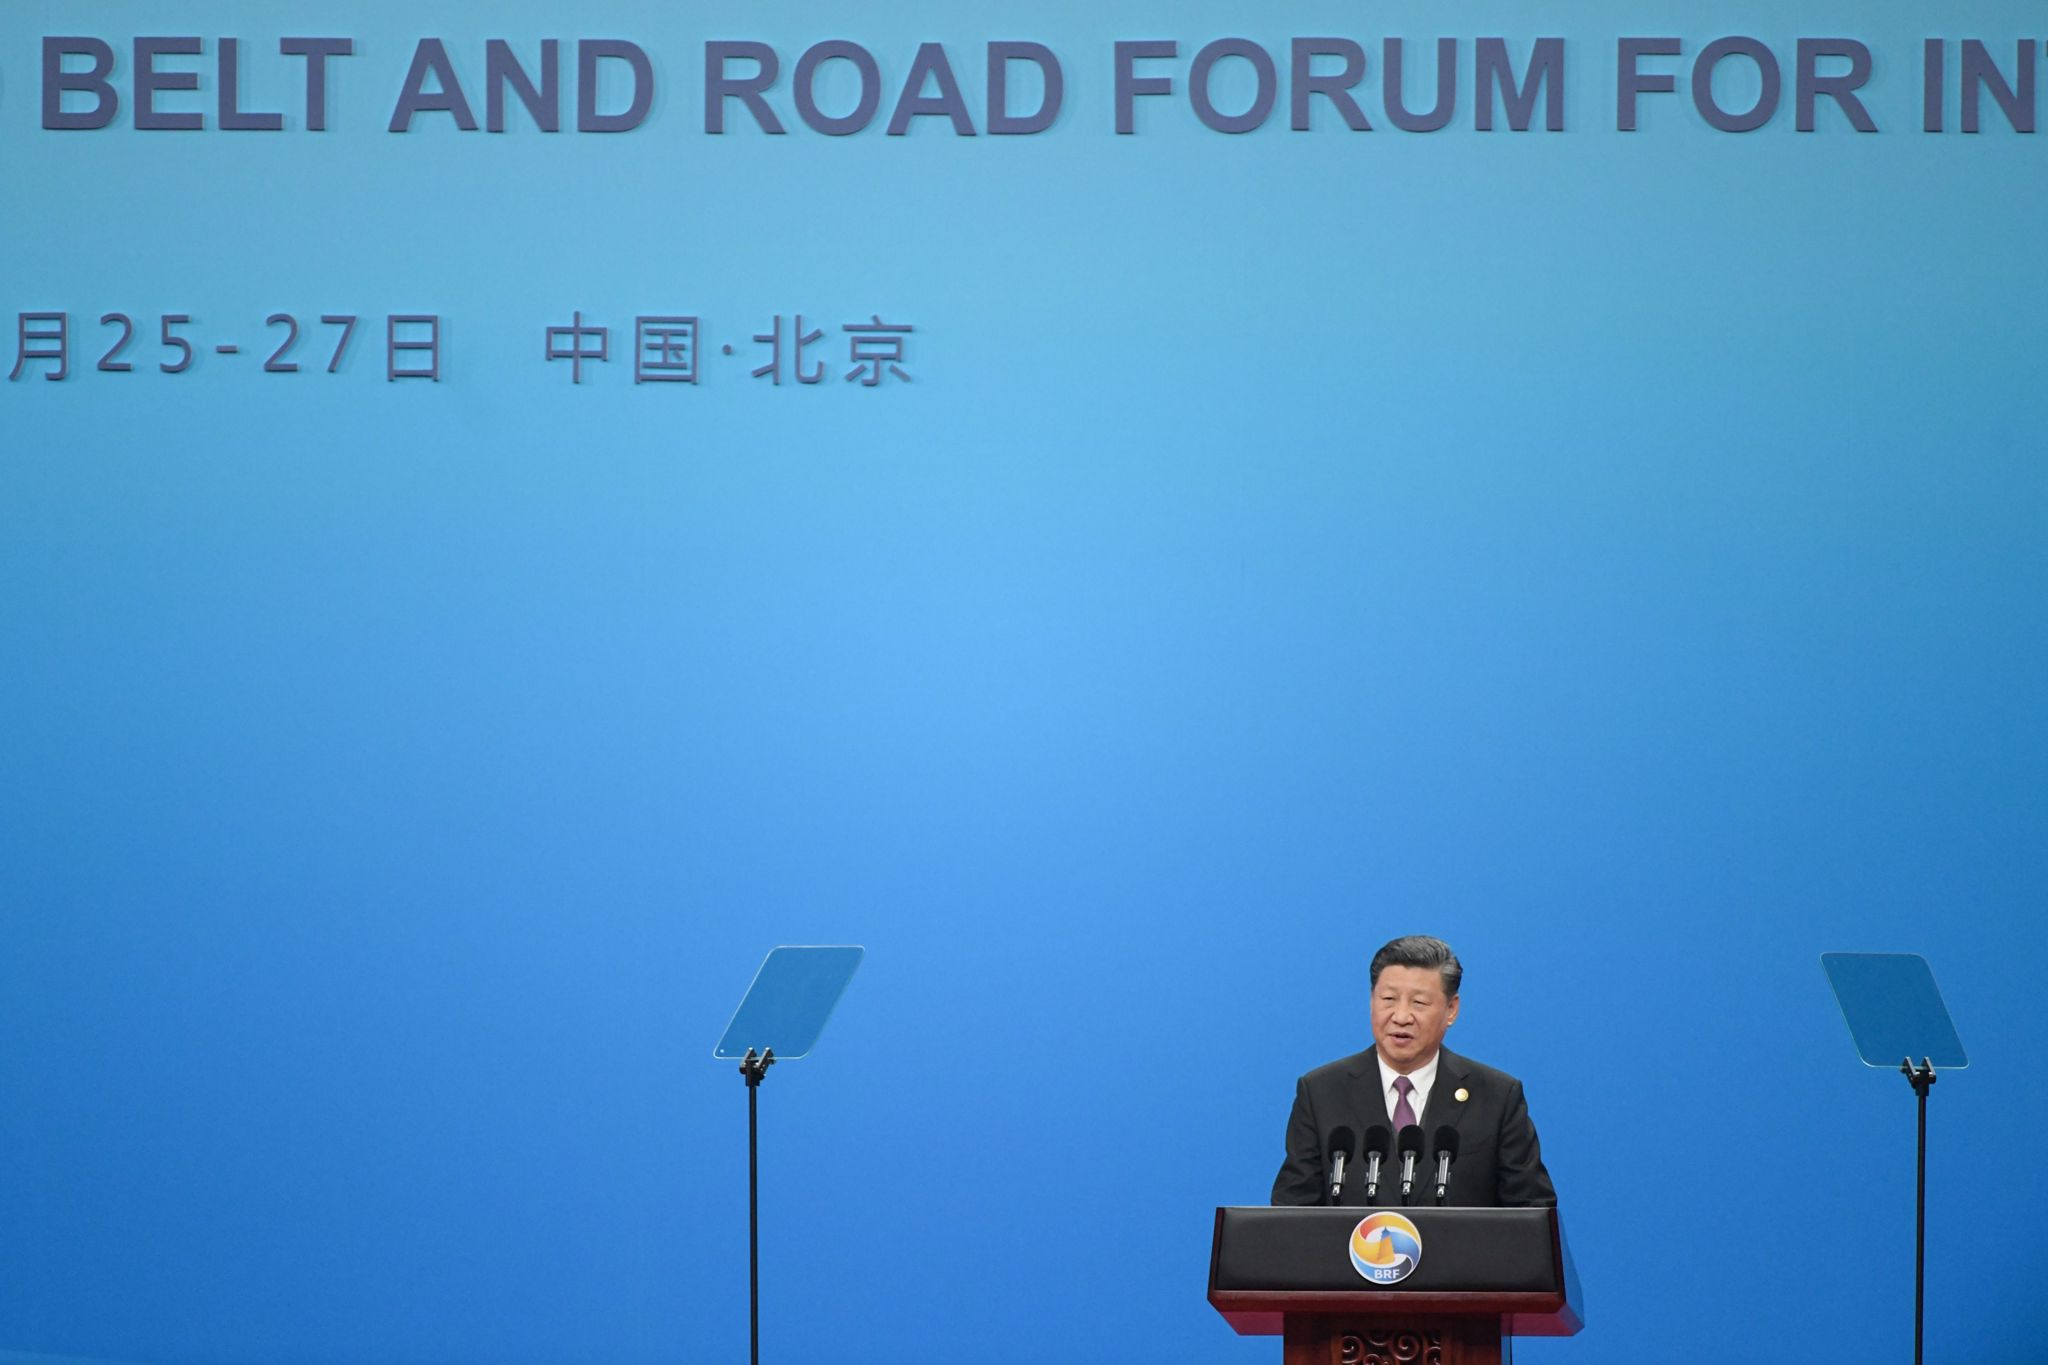 Chinese President Xi Jinping speaks during the opening ceremony of the Belt and Road Forum in Beijing in April 26, 2019